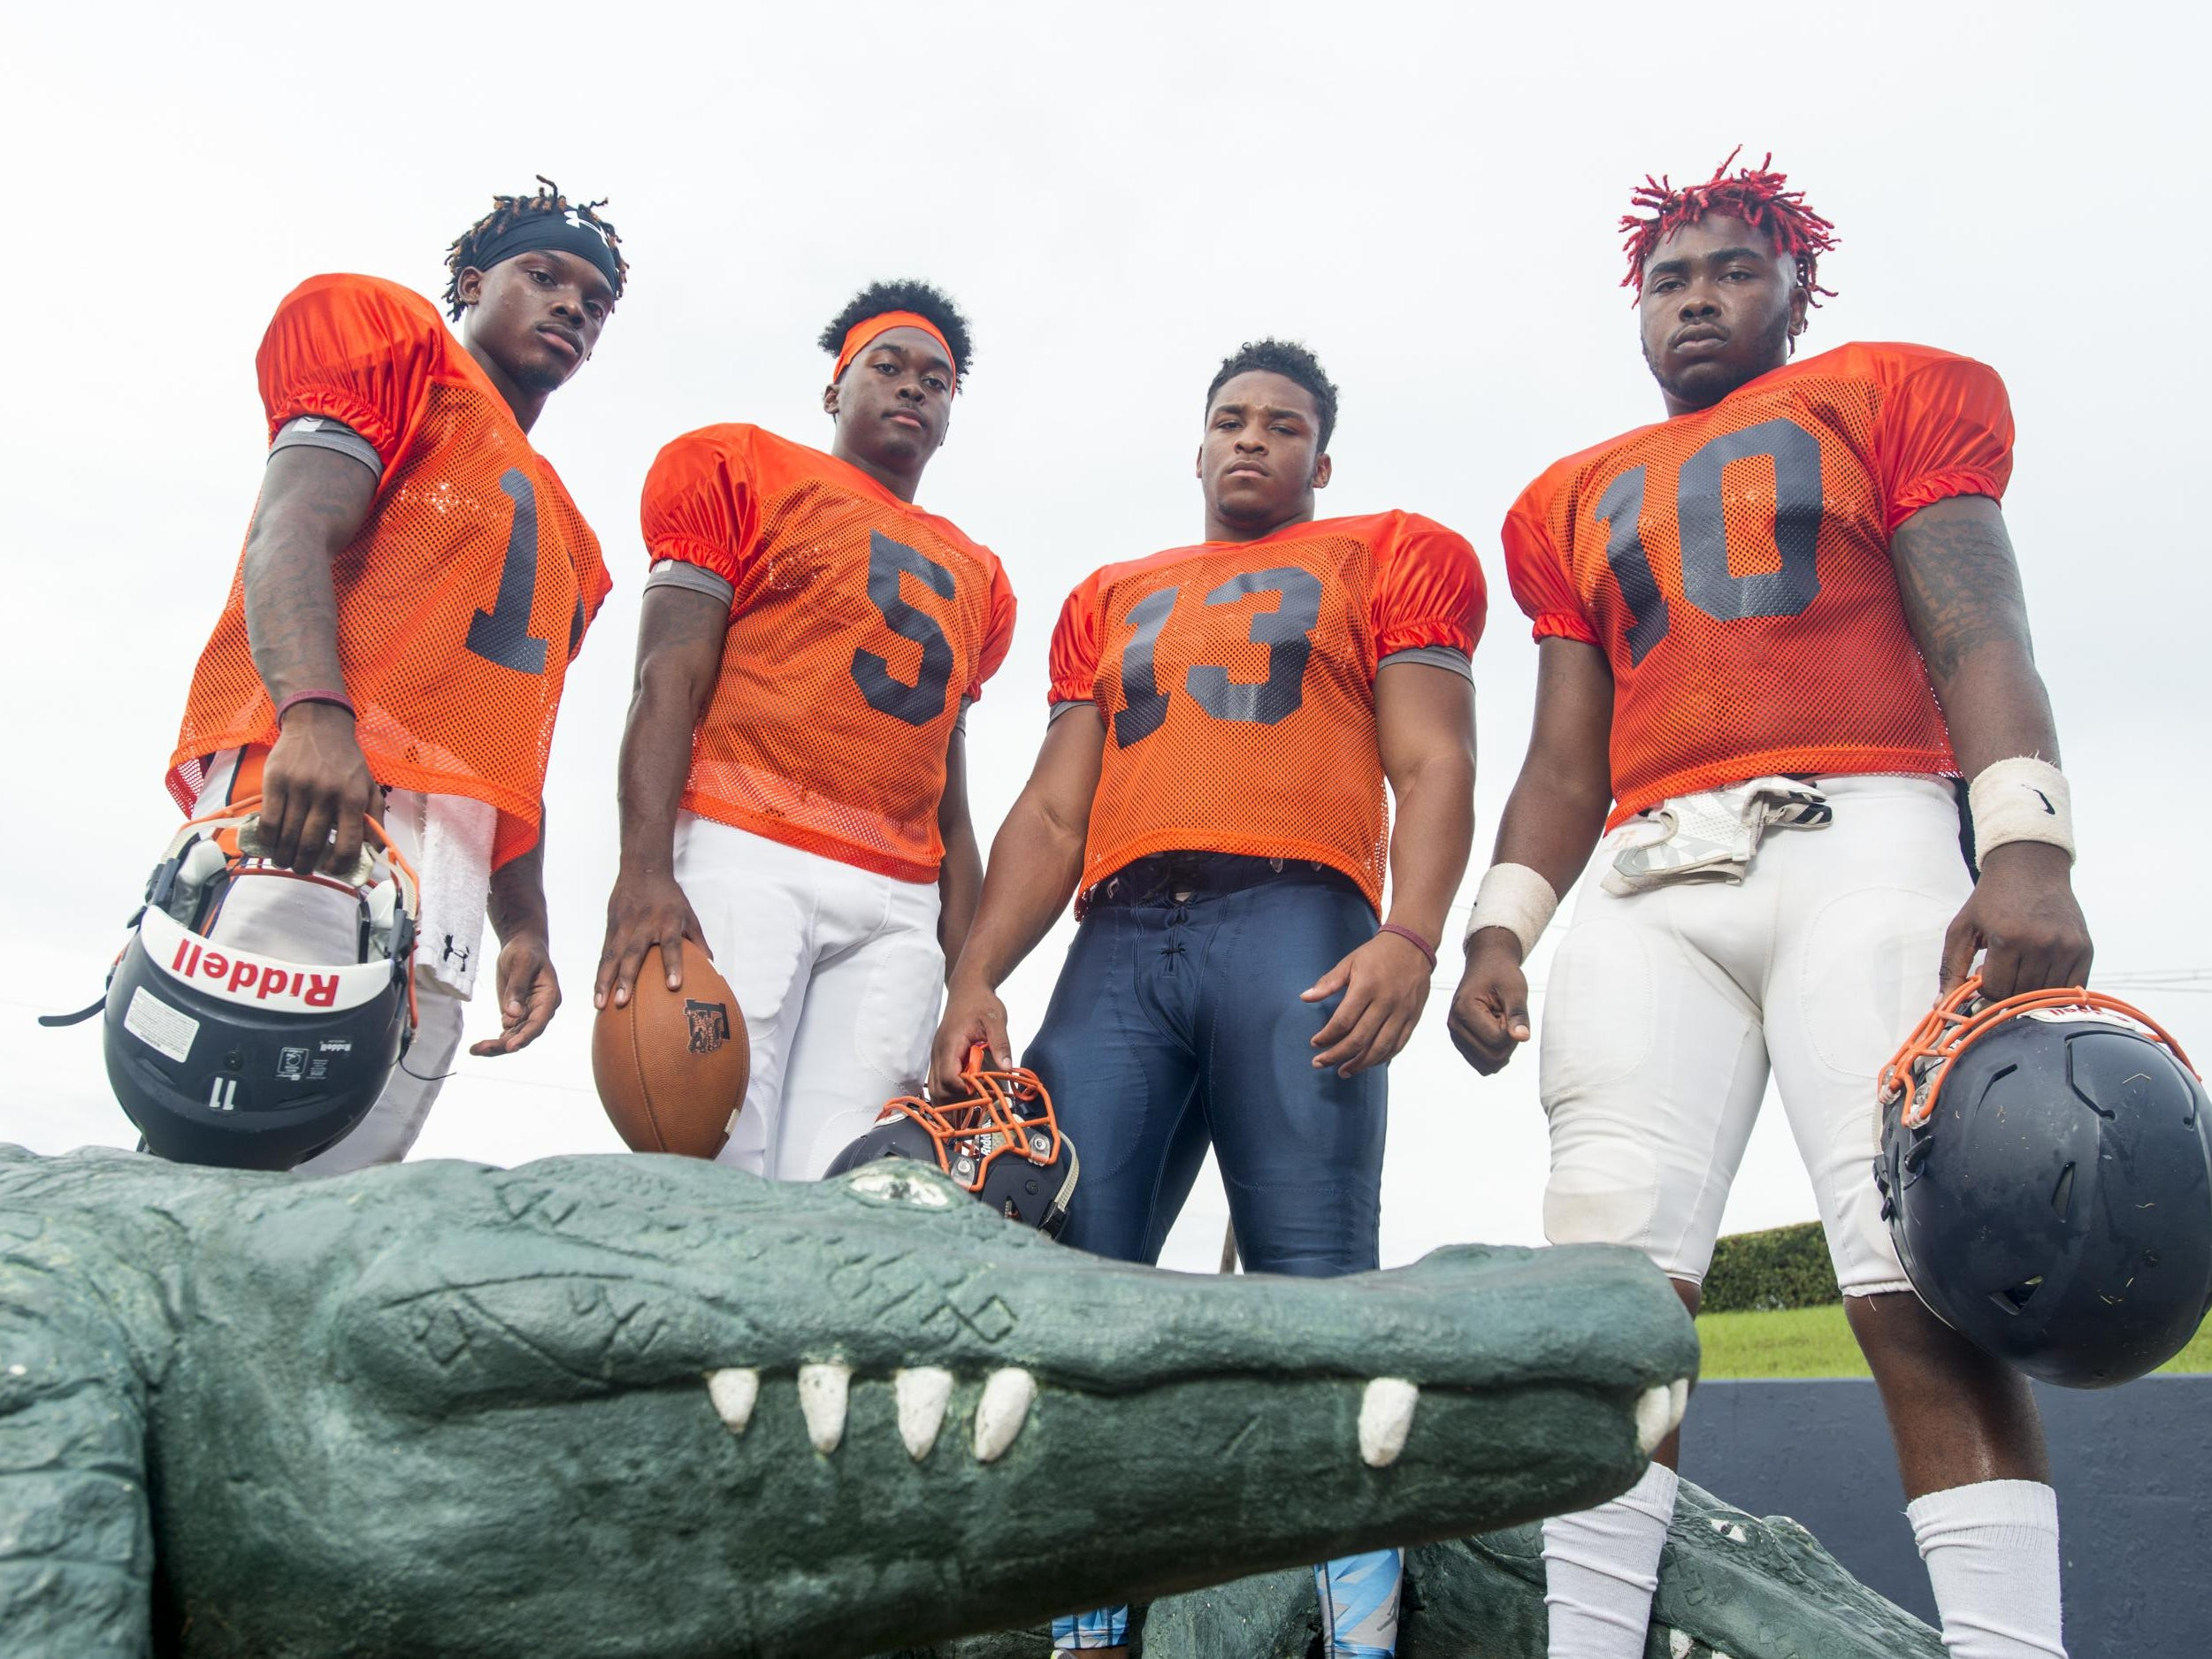 Football players (left to right) Martin McGhee (11), Z'khari Blocker (5), Shountrell Hills (13), and Amarquez Moore (10) at Escambia High School in Pensacola, FL on Monday, August 8, 2016.